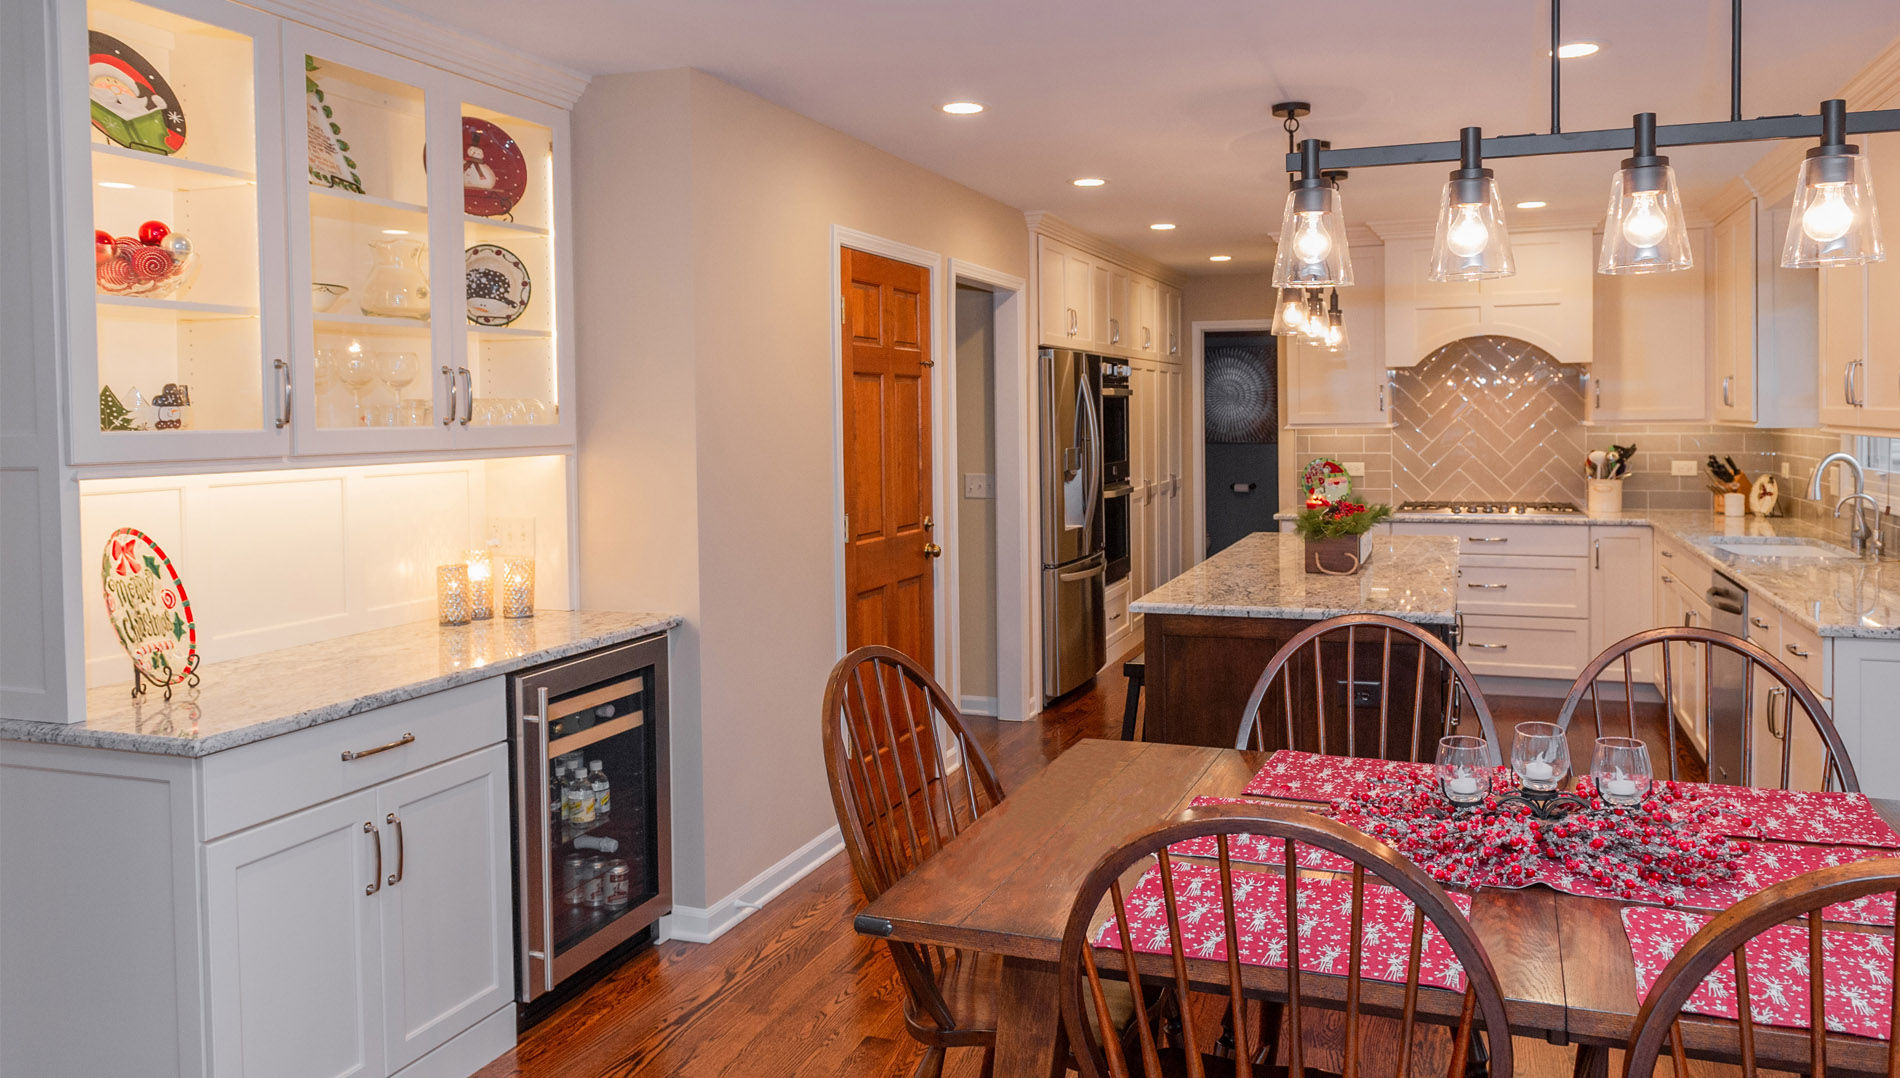 kitchen design naperville wooden cart bathroom remodeling aurora wheaton home for holidays and every day in kitchens